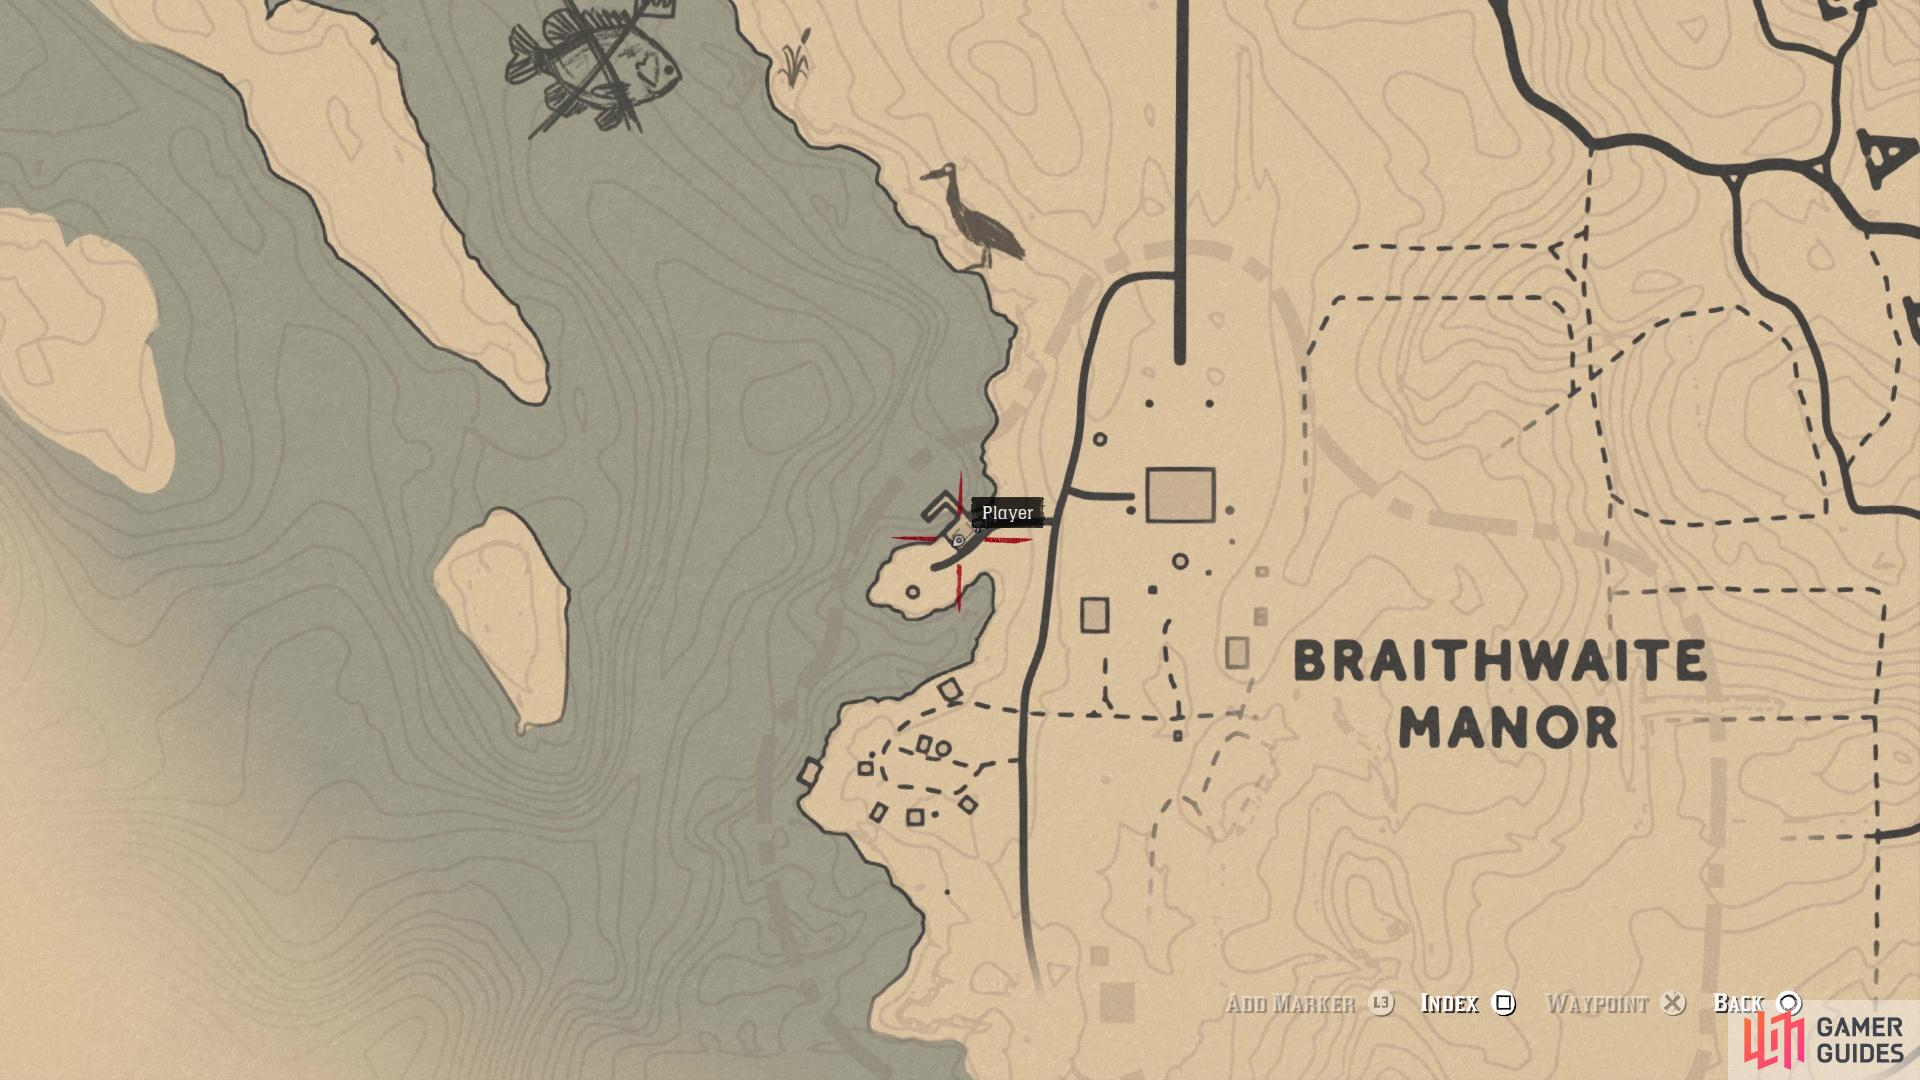 The location of the US Frigate card on the map